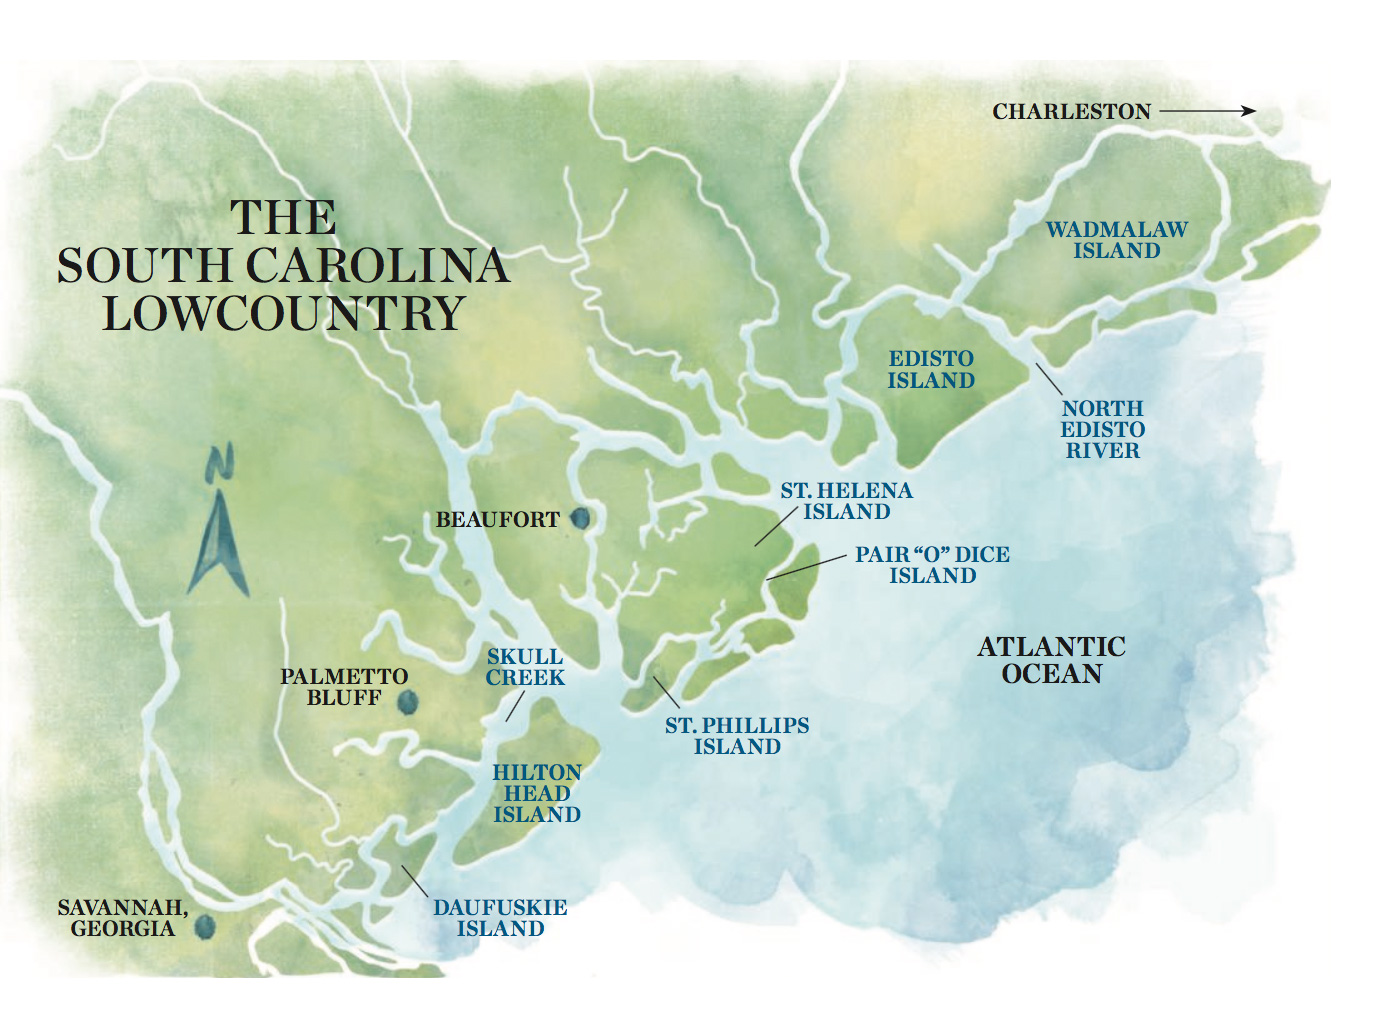 Map of the Lowcountry